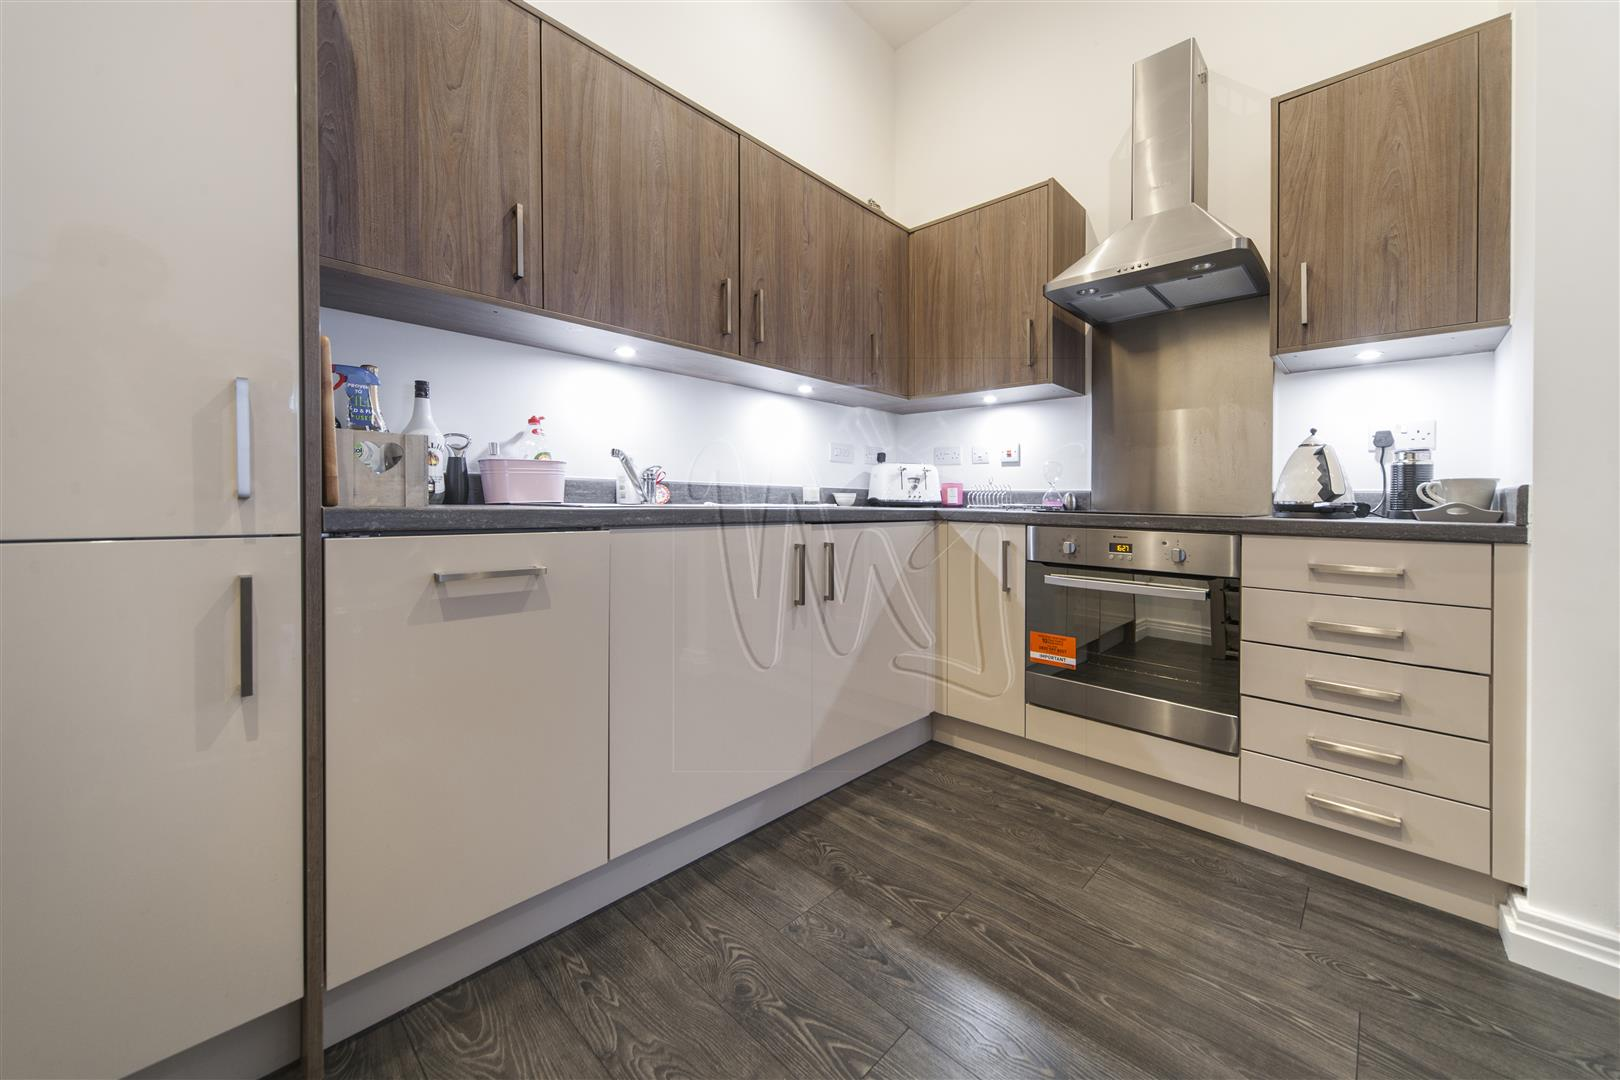 2 Bedroom Property For Sale Metalworks Apartments